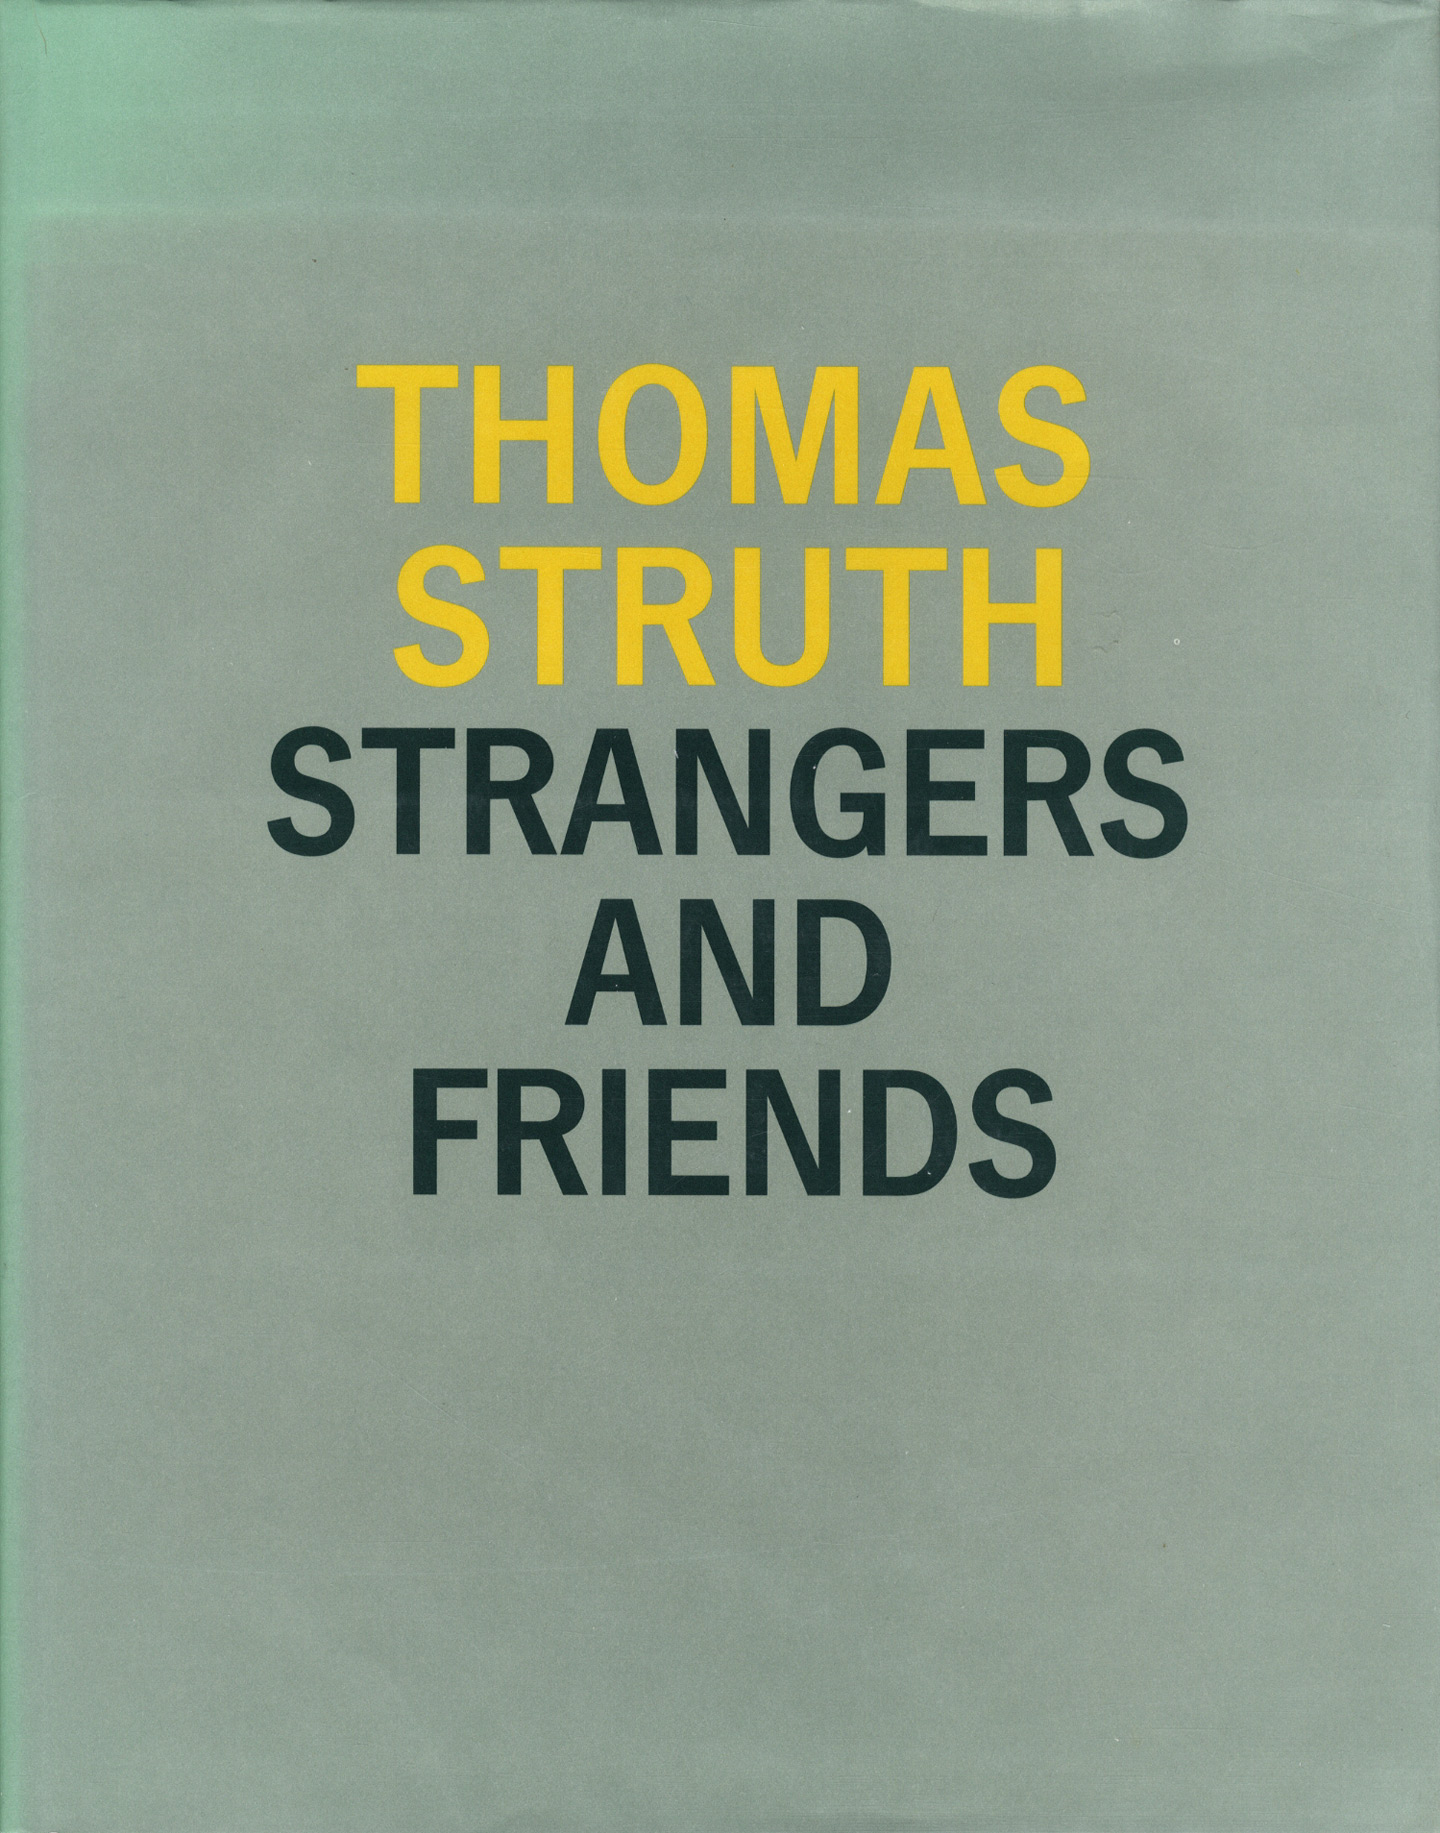 Thomas Struth: Strangers and Friends: Photographs 1986-1992 (Hardcover Edition)